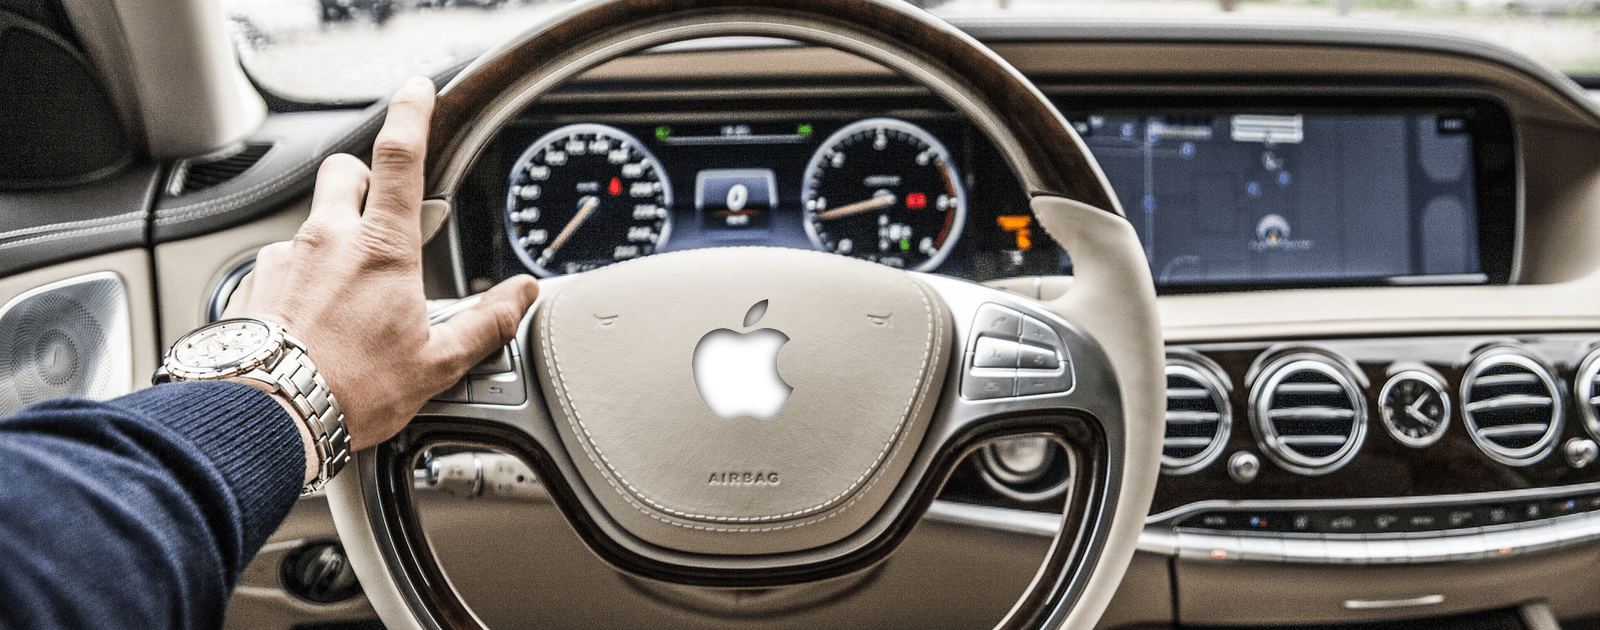 Apple Car Might Actually be an Electric Van Instead